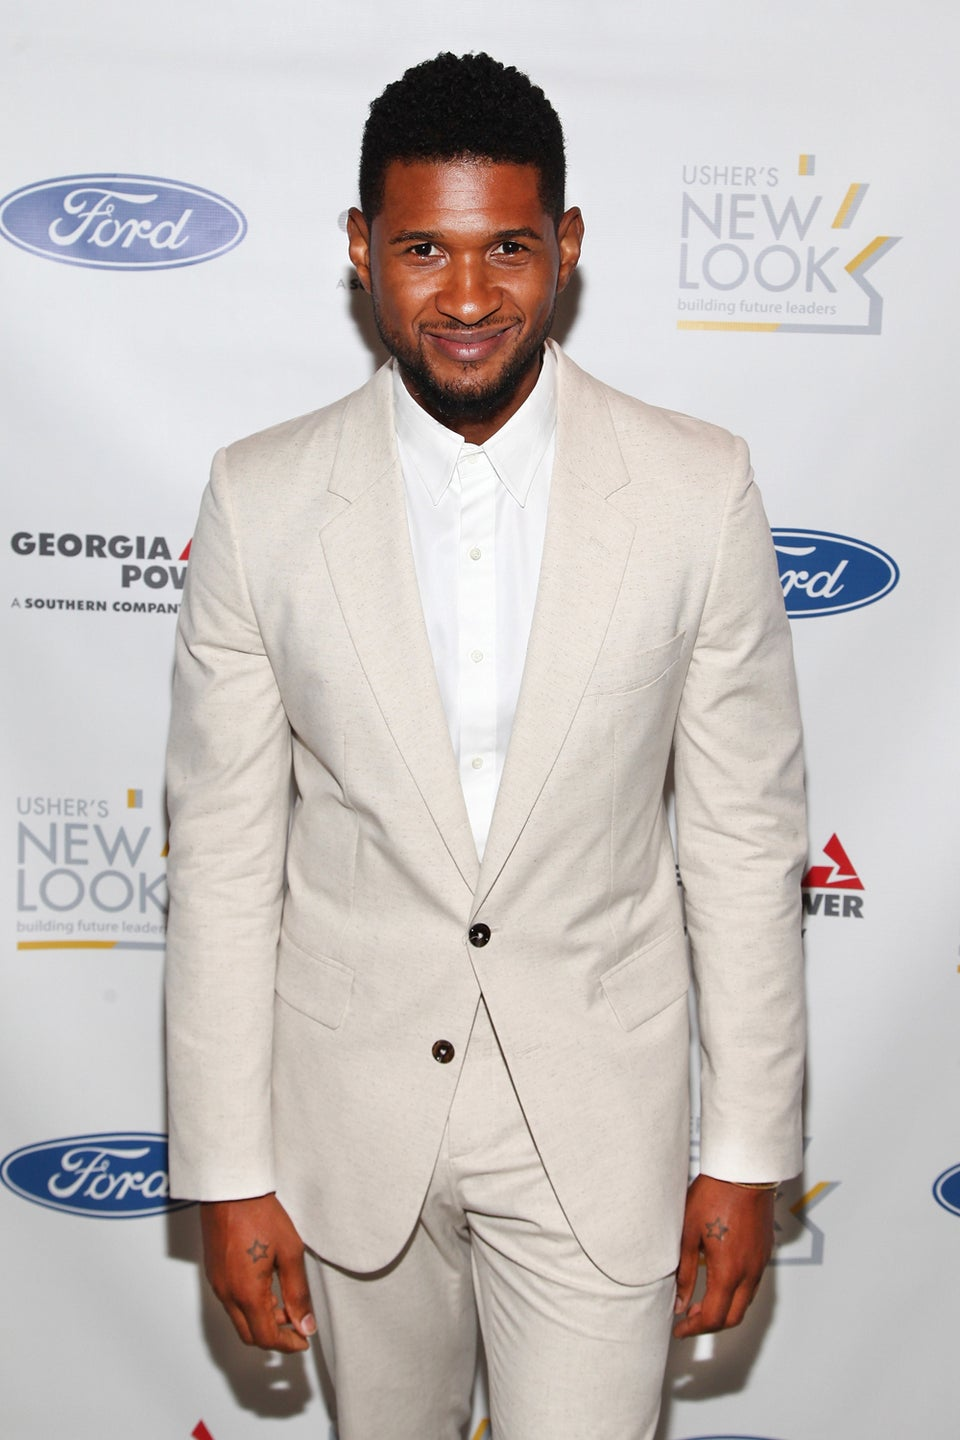 Usher Publicly Thanks Men Who Saved His Son's Life